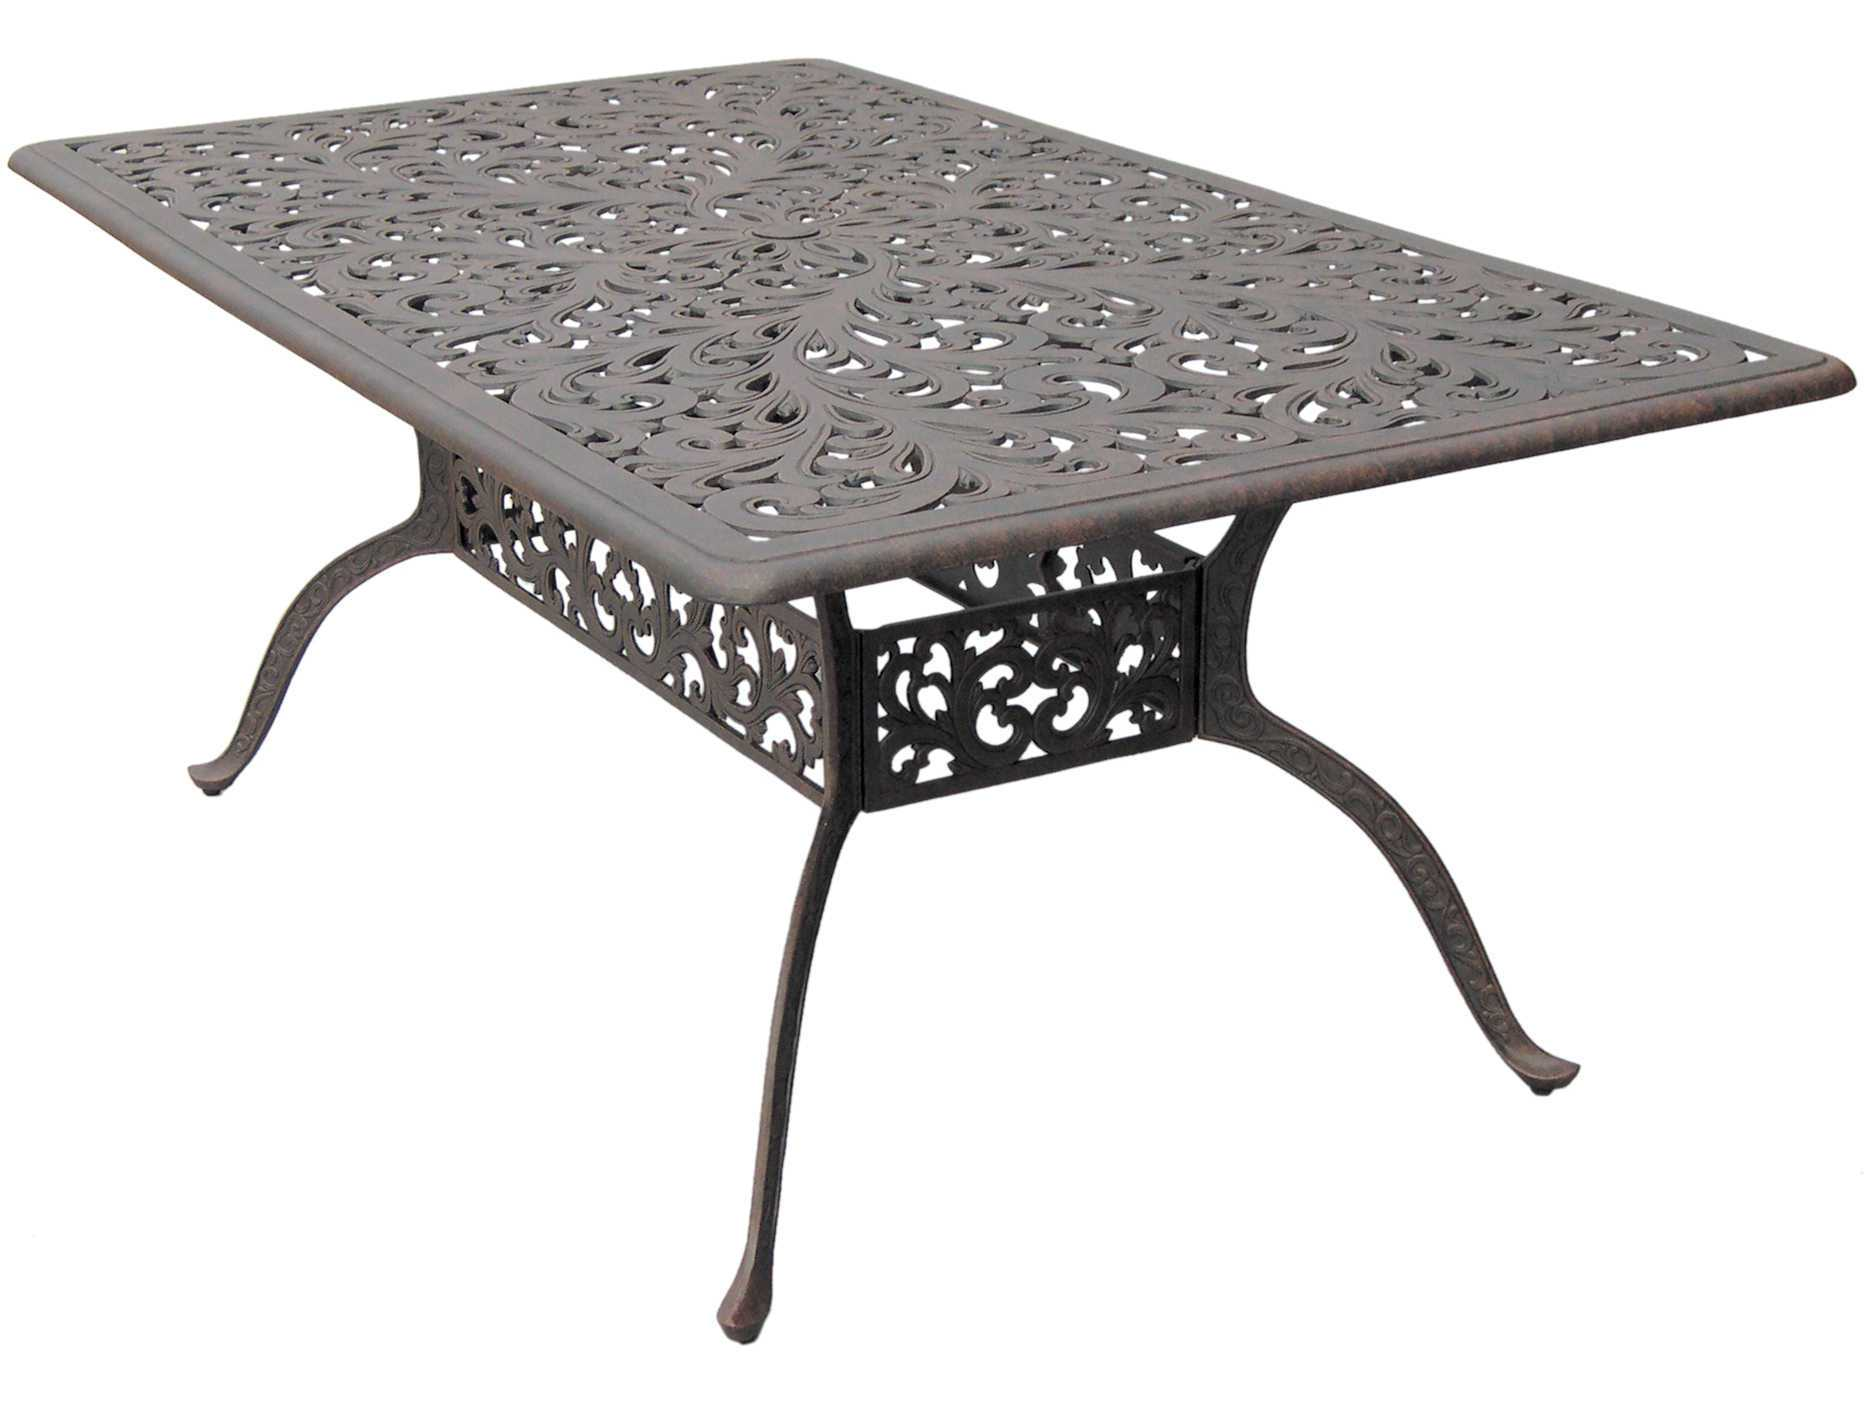 Darlee Outdoor Living Series 80 Cast Aluminum Antique Bronze 72 X 42 Rectangu